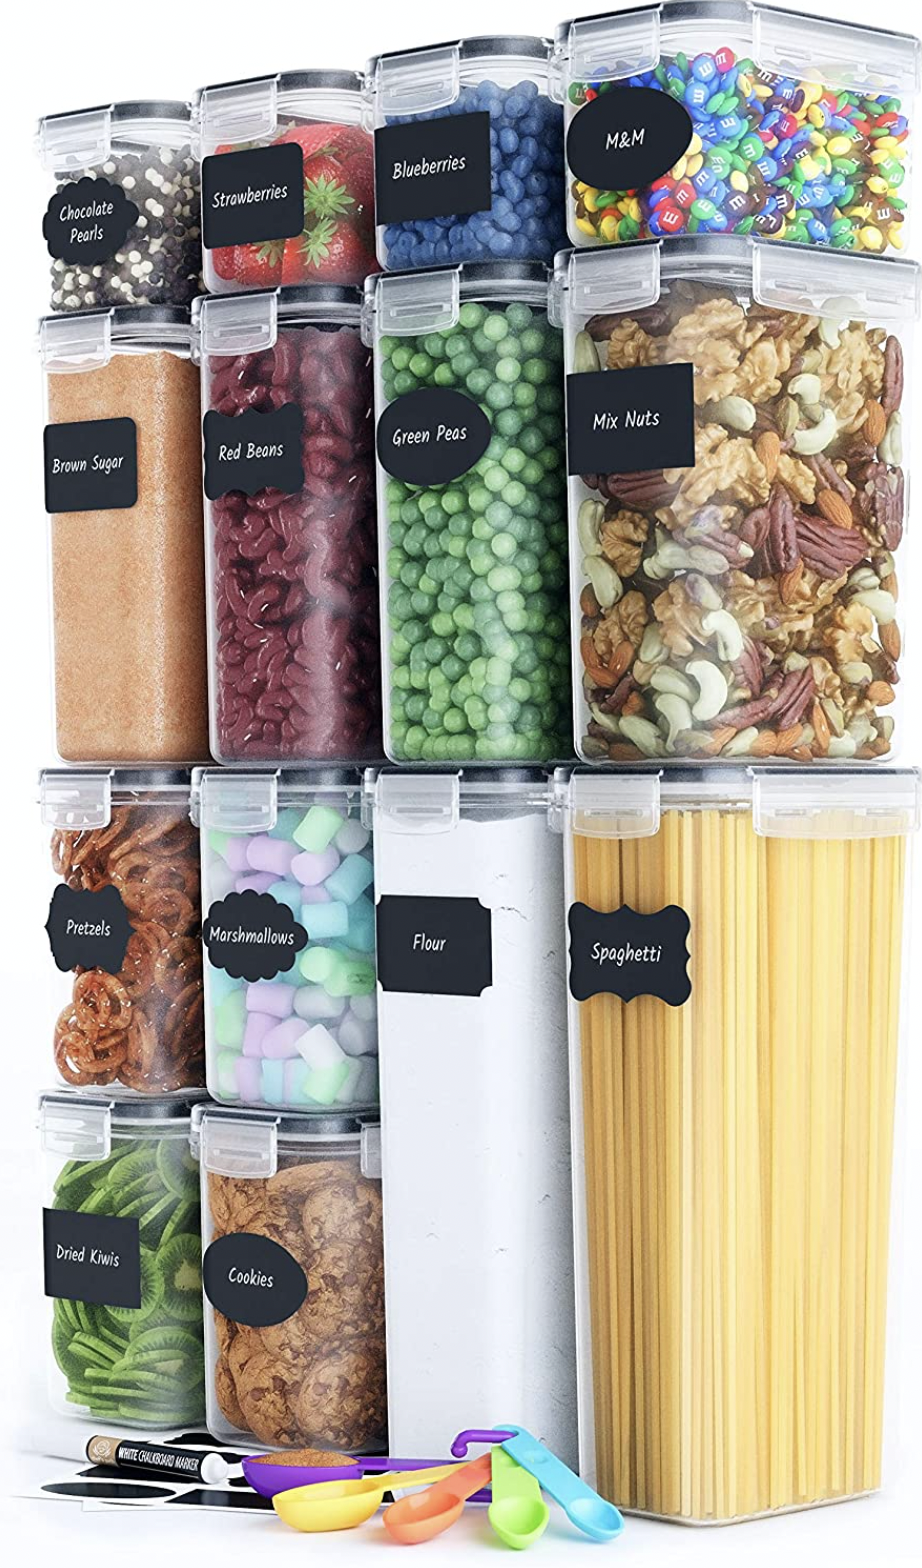 Chef's Path Airtight Food Storage Containers Set [14 Piece] - Kitchen Pantry Organization and Storage, BPA-Free, Plastic Canisters with Durable Lids